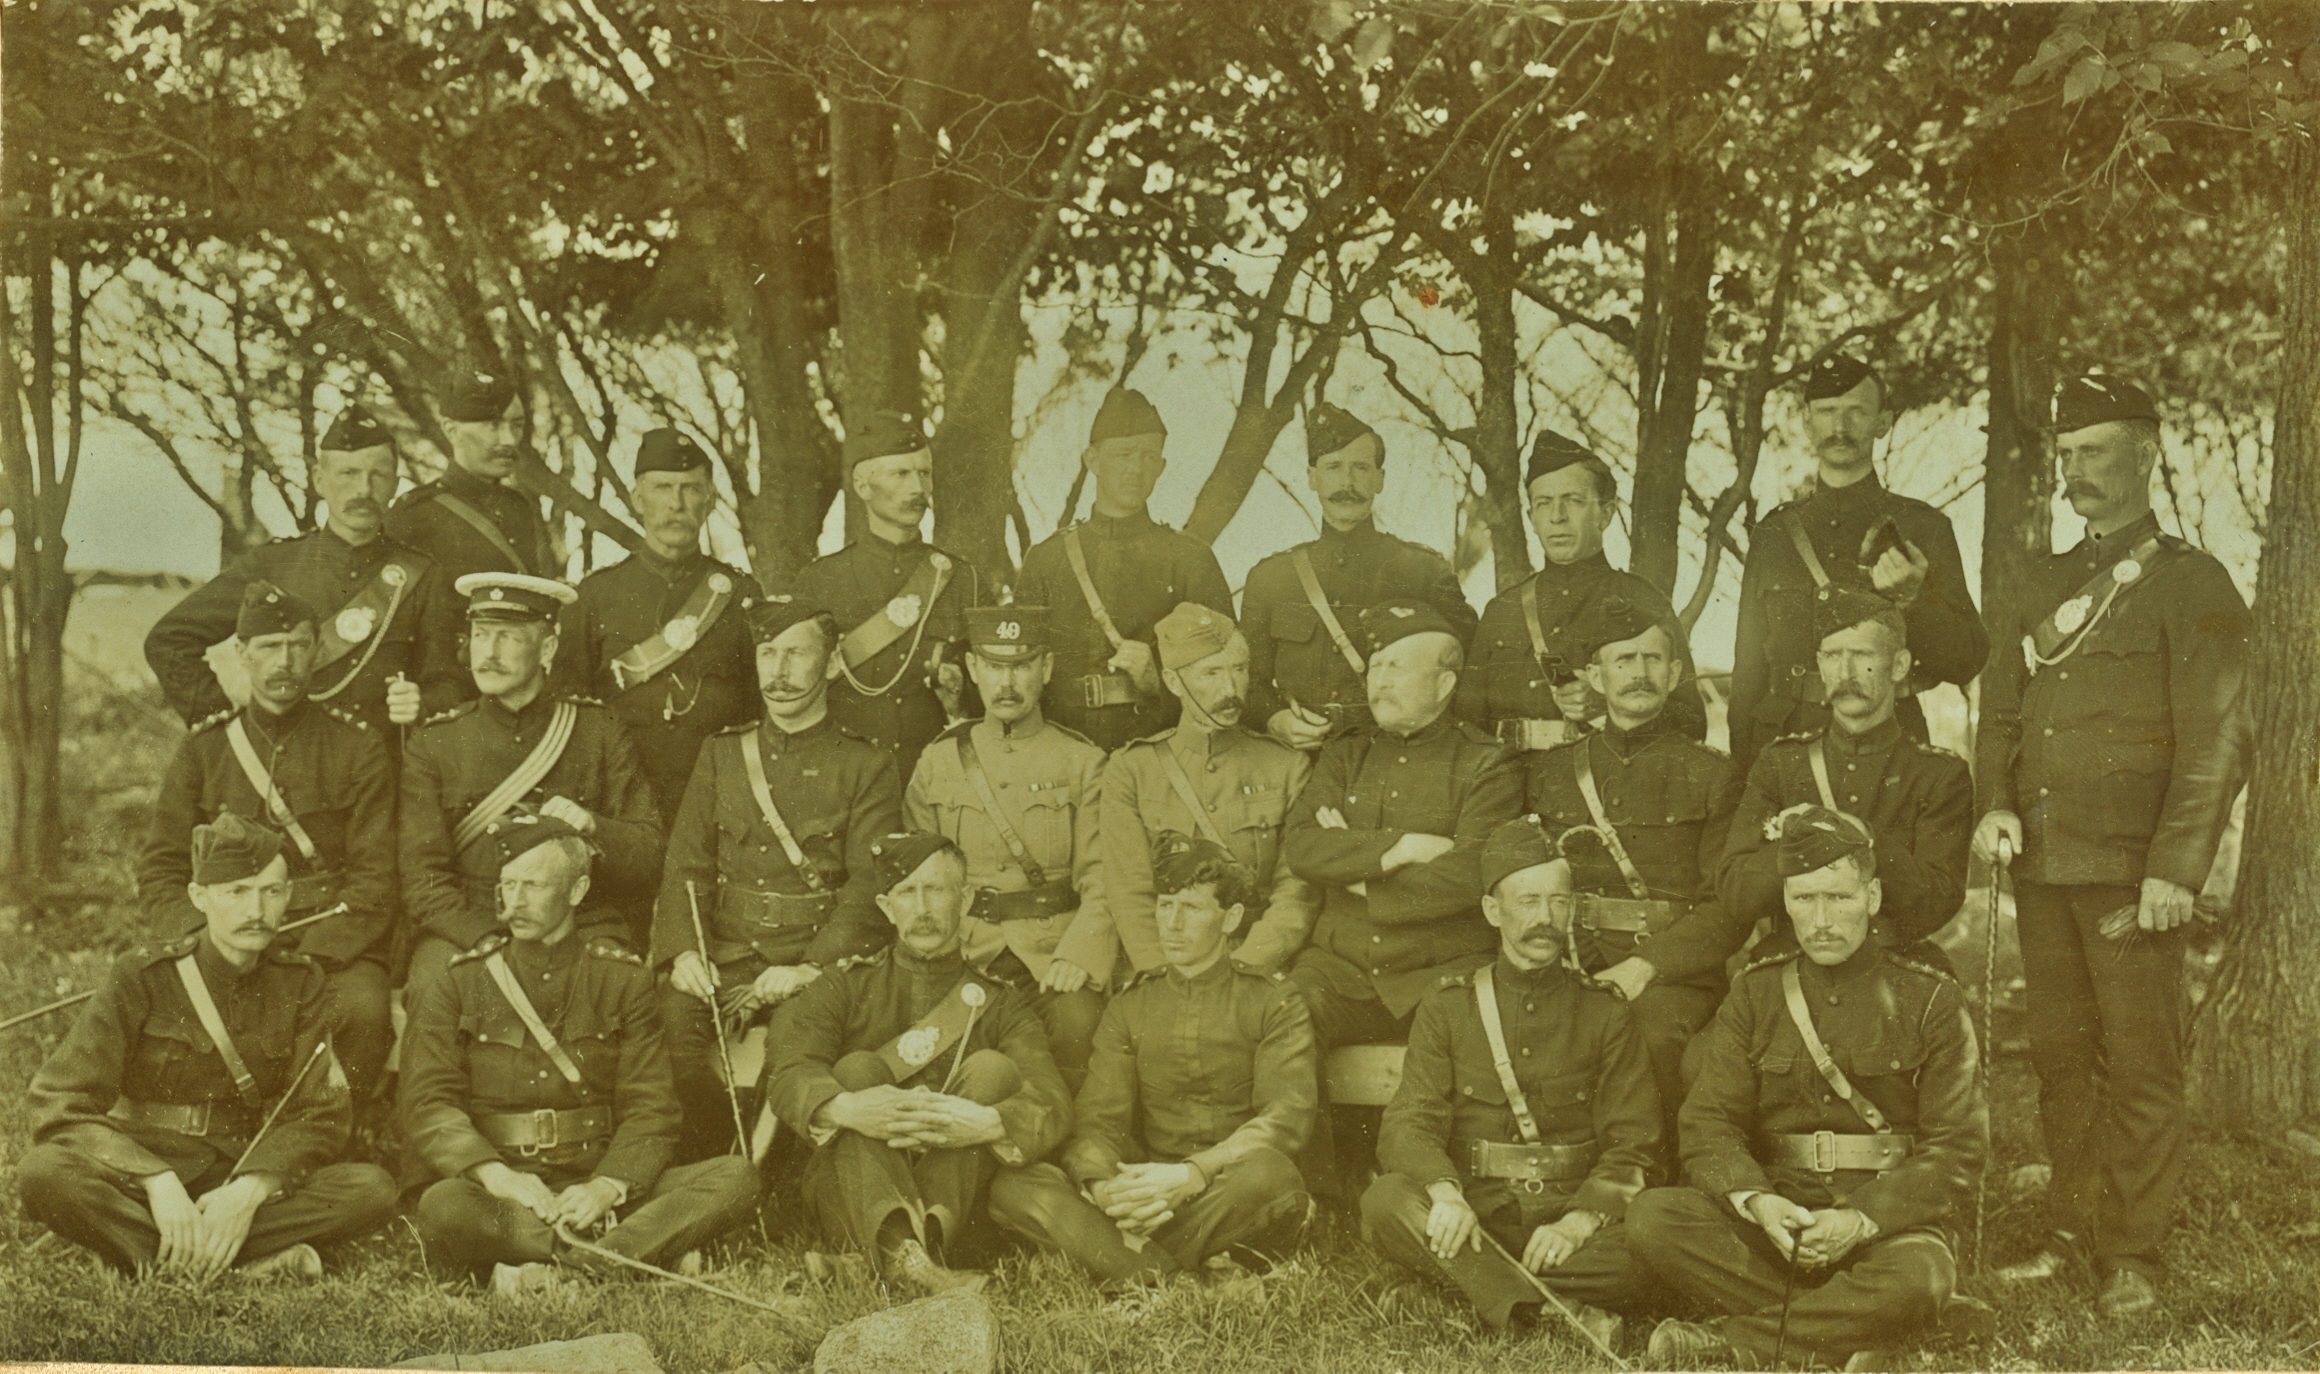 Charles Archibald Bleecker, 1st row 2nd from right